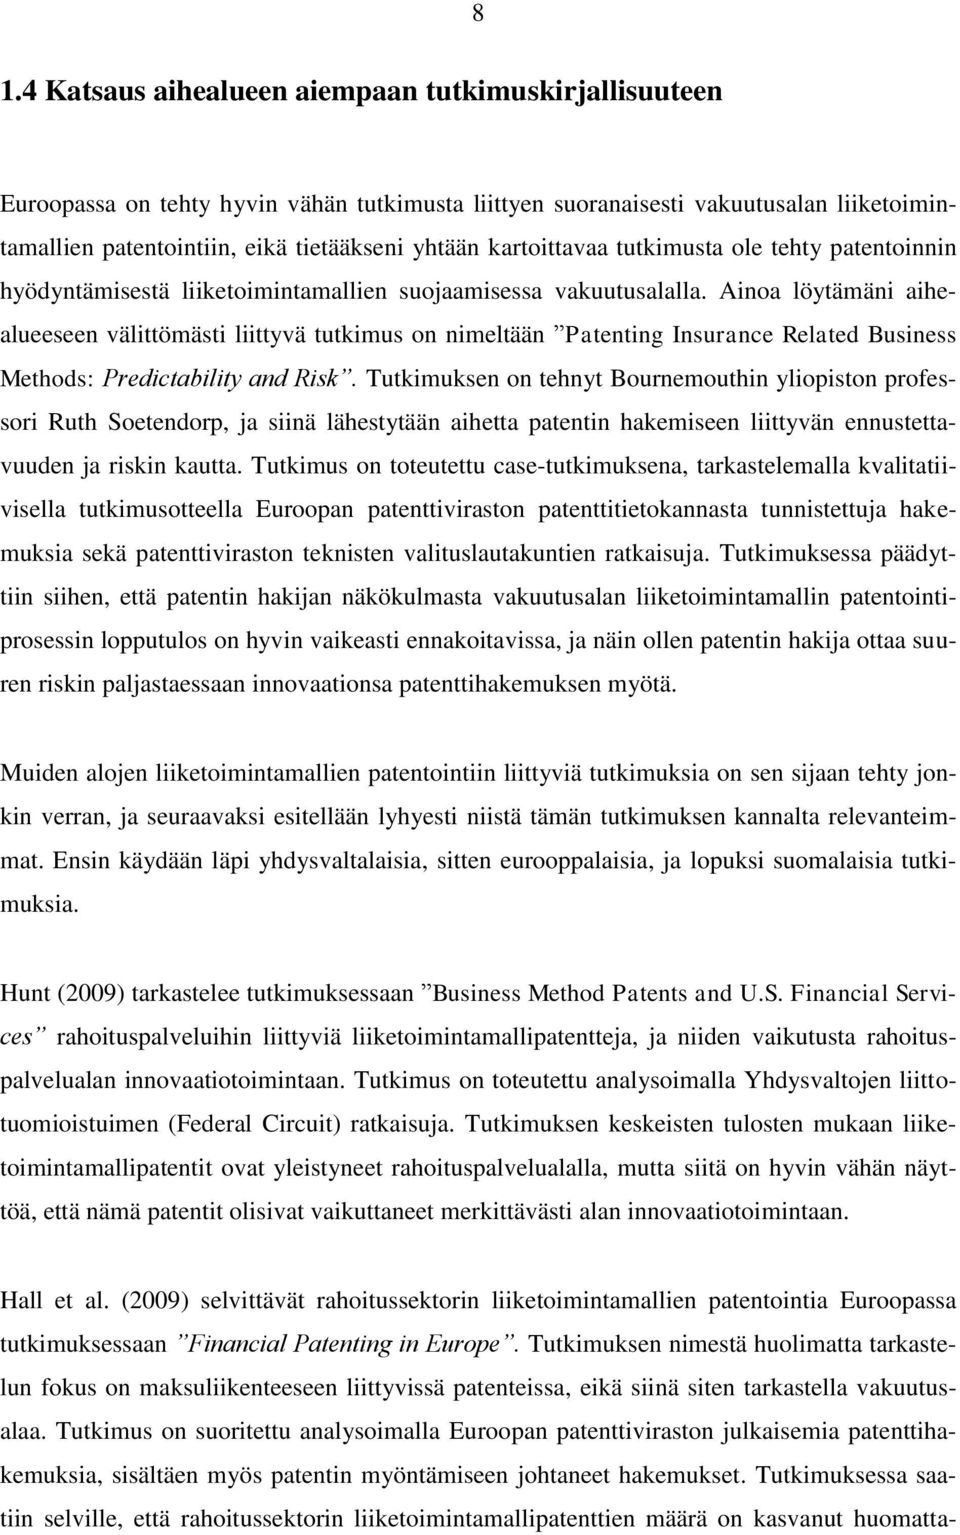 Ainoa löytämäni aihealueeseen välittömästi liittyvä tutkimus on nimeltään Patenting Insurance Related Business Methods: Predictability and Risk.